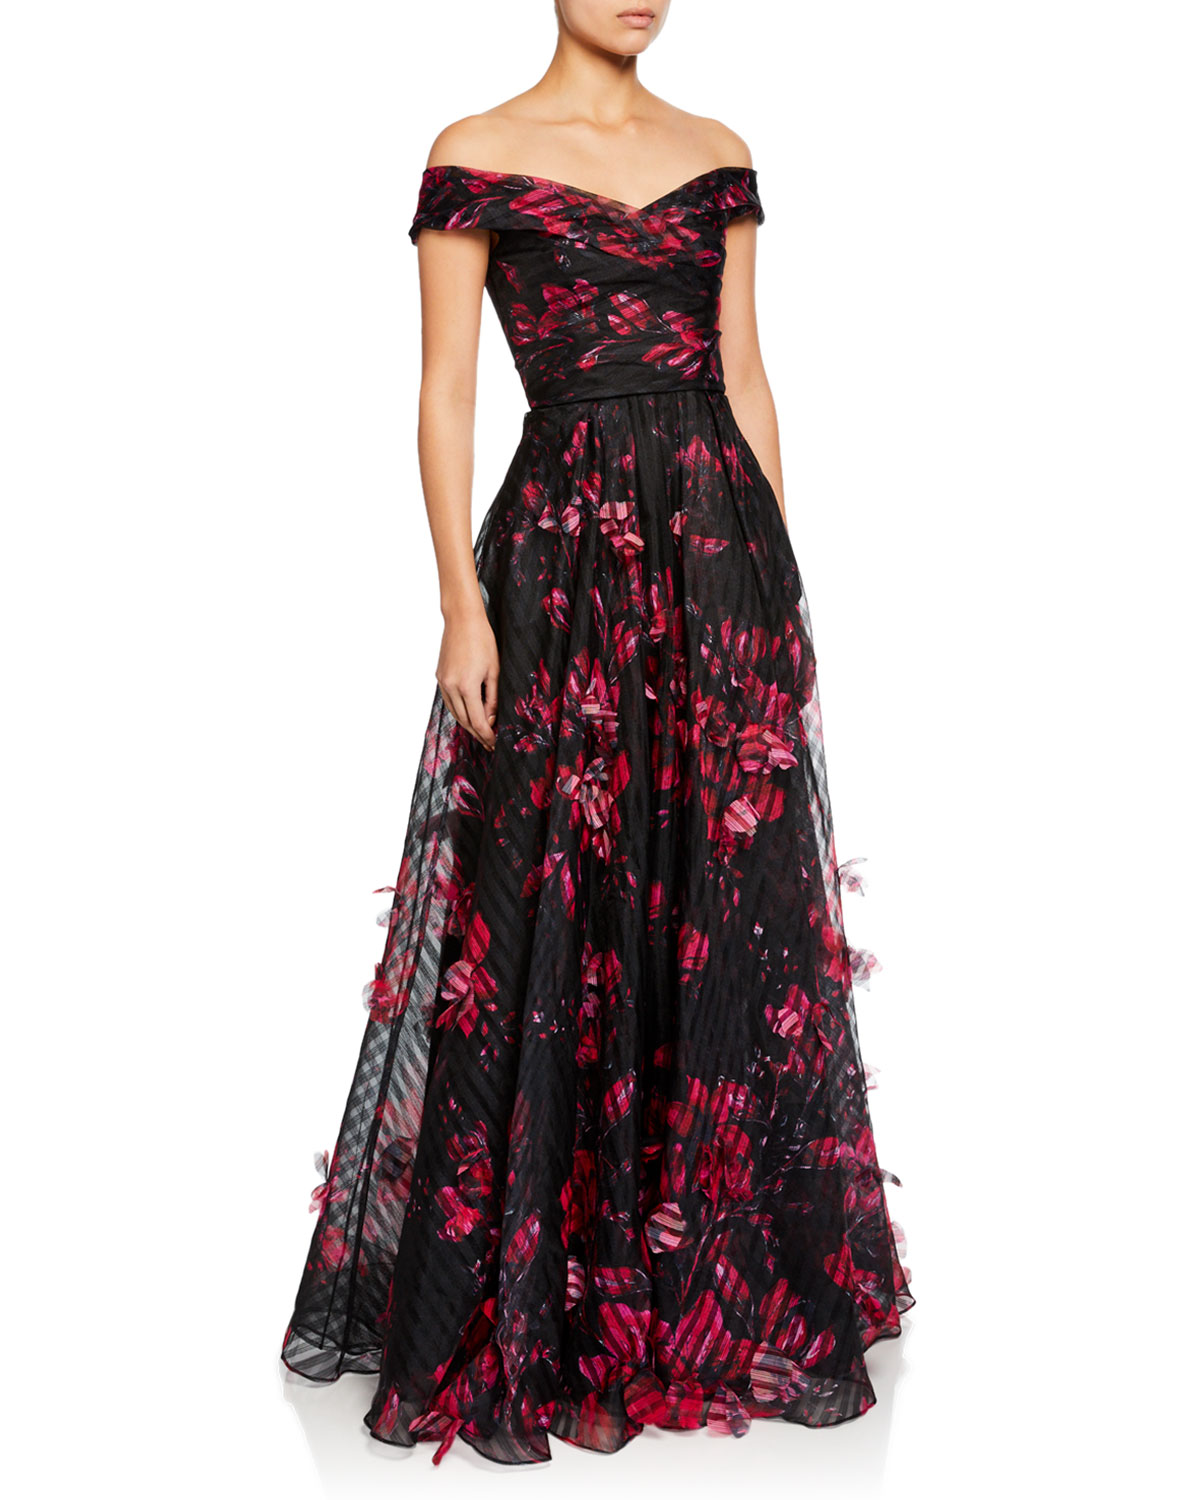 dc27c9fc4f7 Marchesa Notte Off-the-Shoulder Floral-Printed Striped Organza Gown w  3D